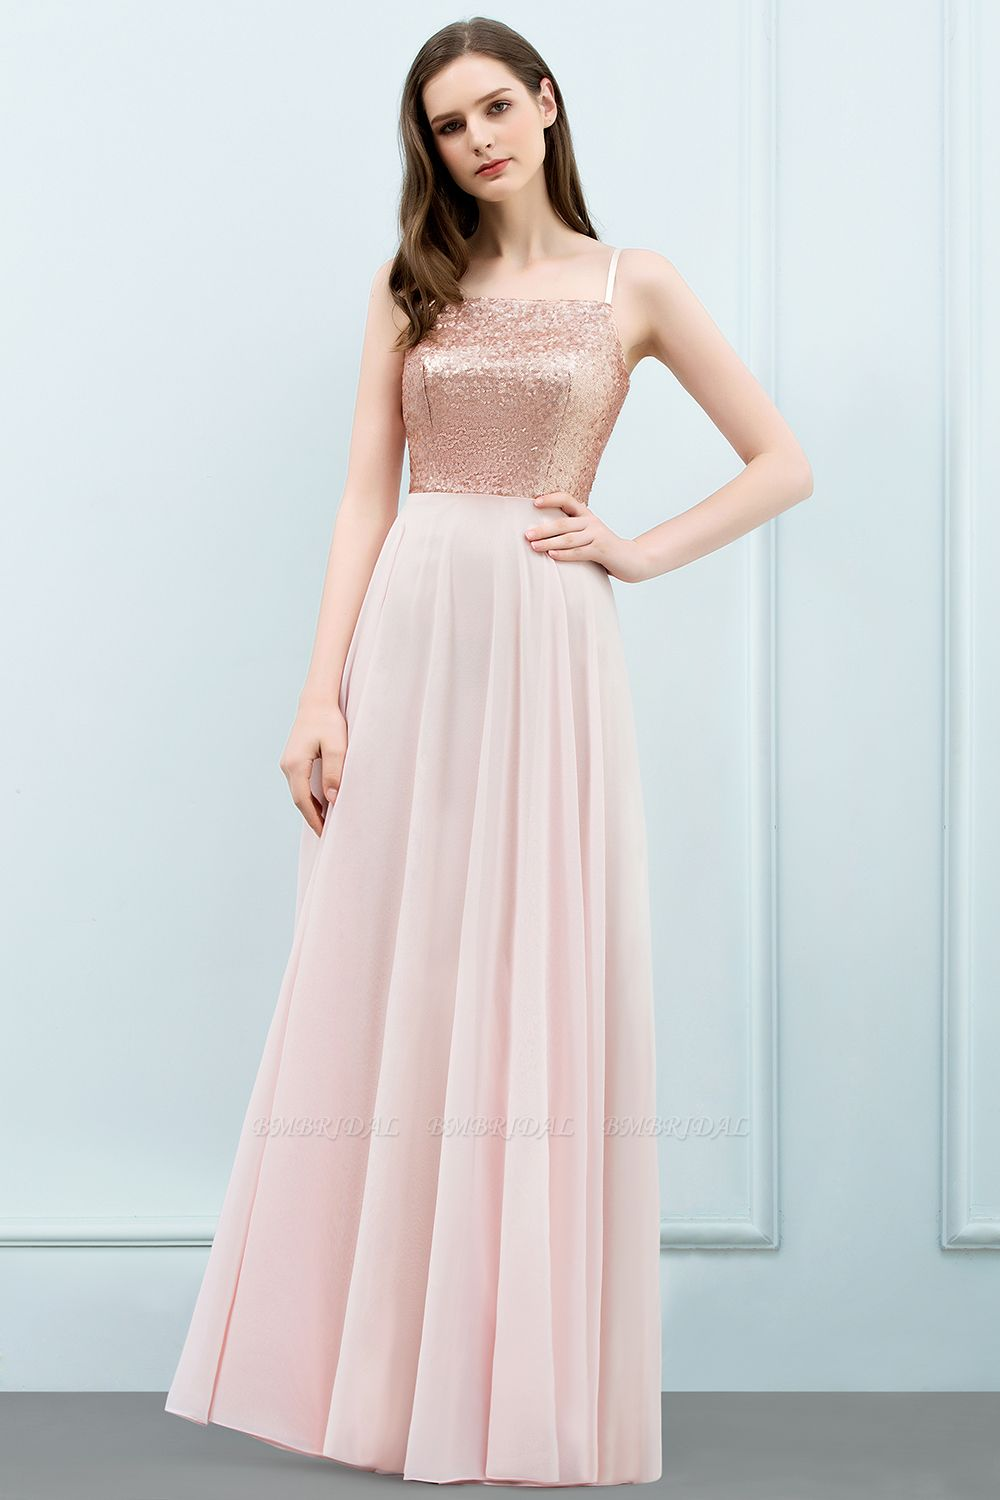 Sparkly Sequined Top Spaghetti Straps Affordable Bridesmaid Dresses Online